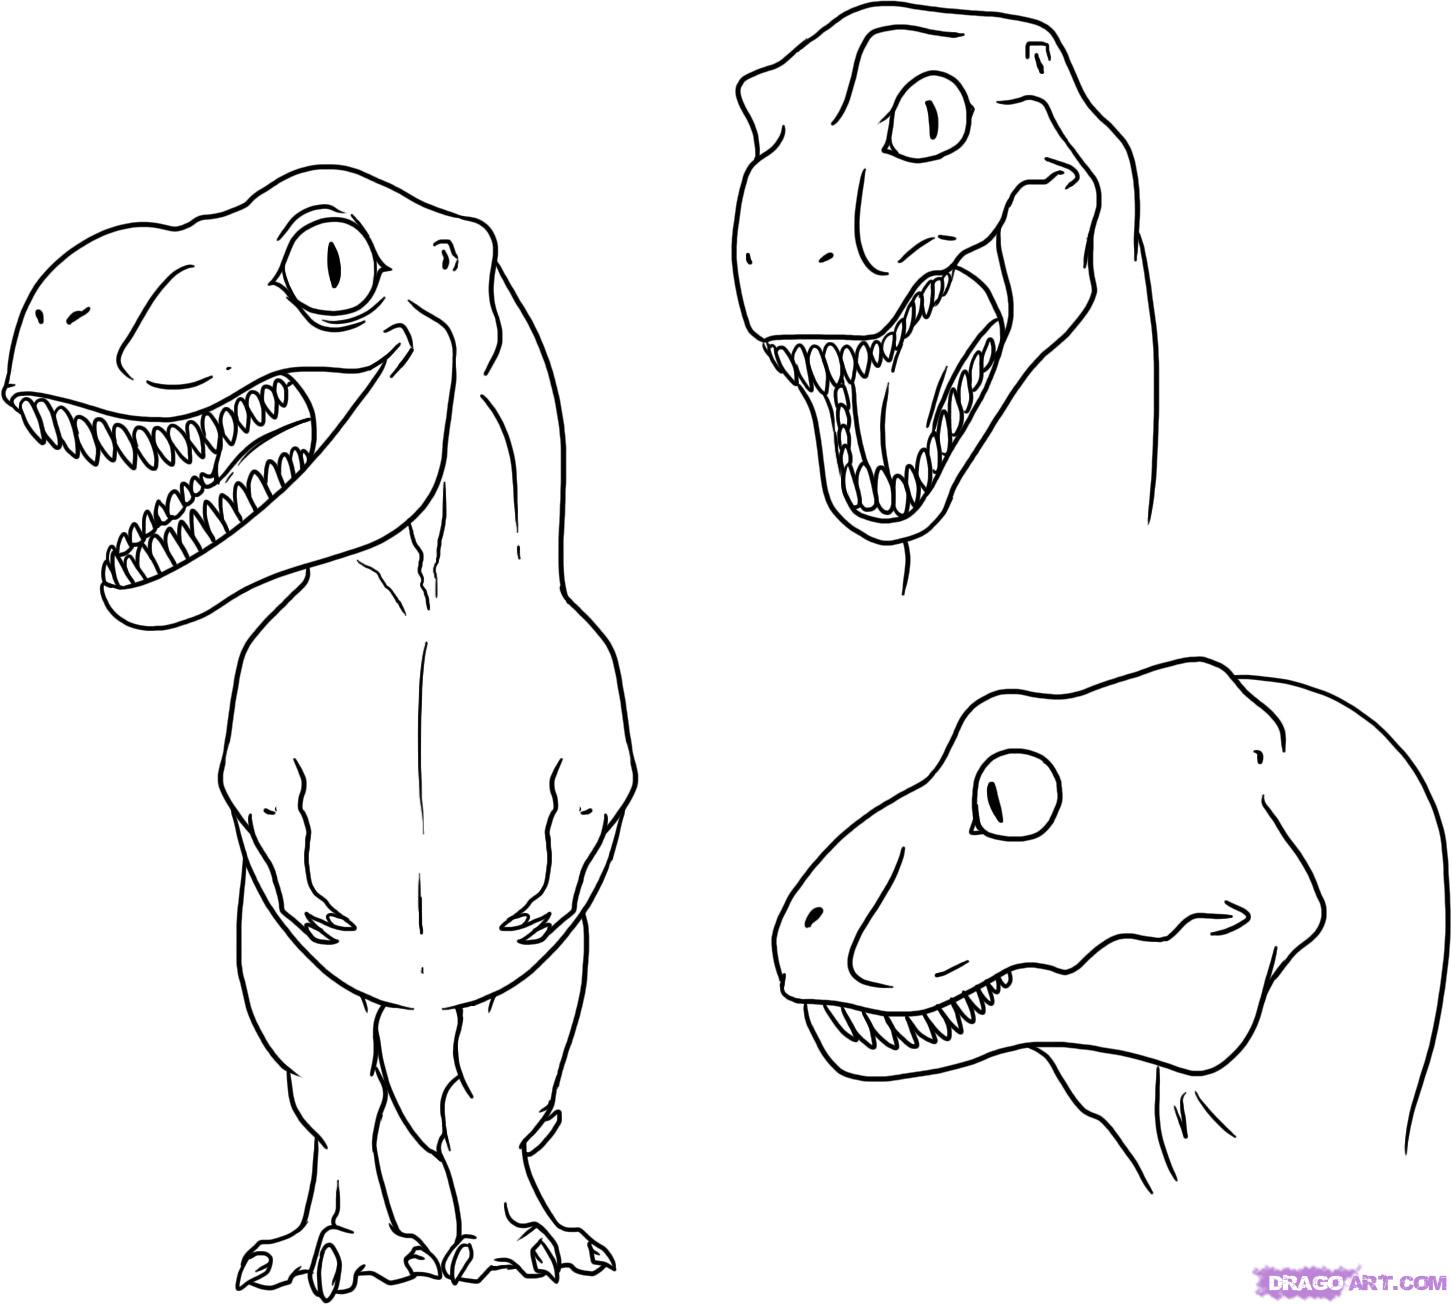 1452x1305 Dinosaur Pictures For Drawing How To Draw A Baby Dinosaur, Step By